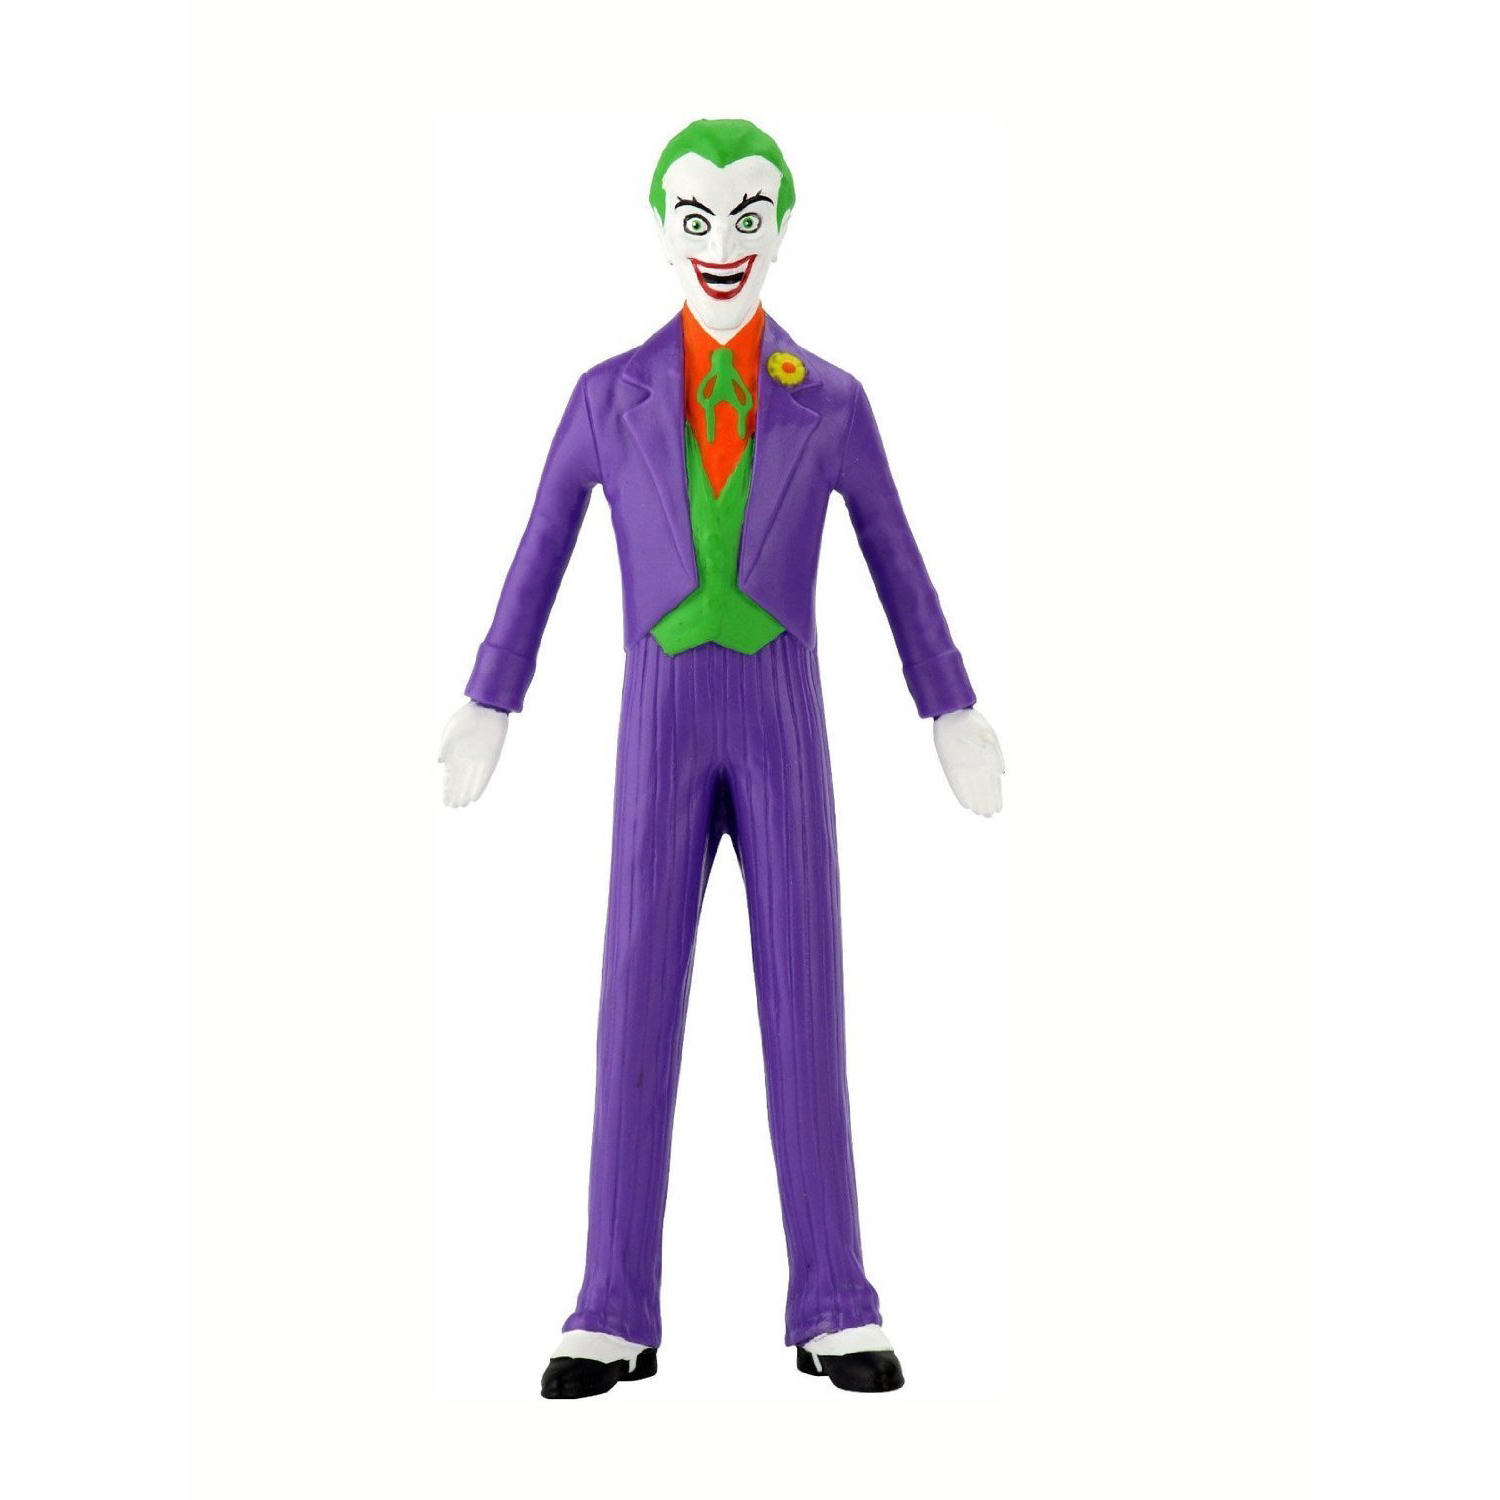 "The Joker 5.5"" Bendable Action Figure"